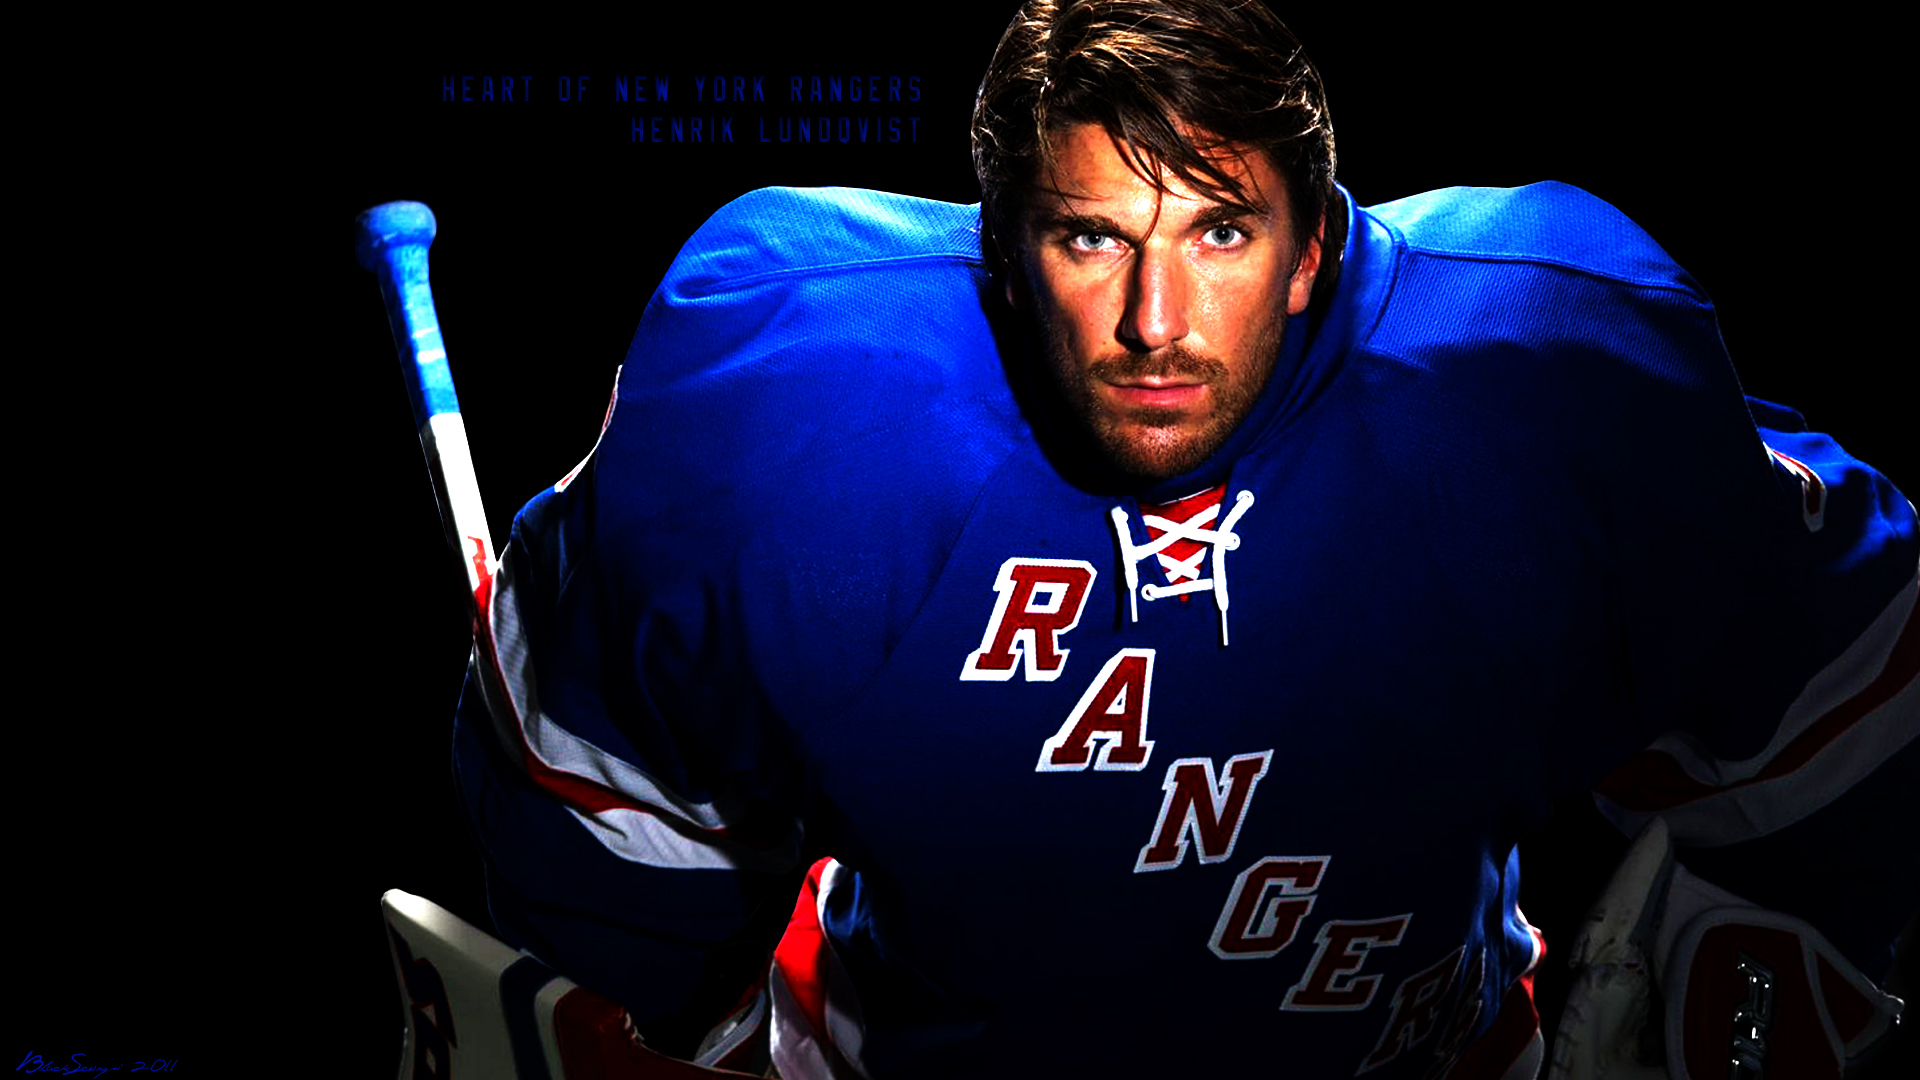 Henrik Lundqvist wallpapers and images   wallpapers pictures photos 1920x1080